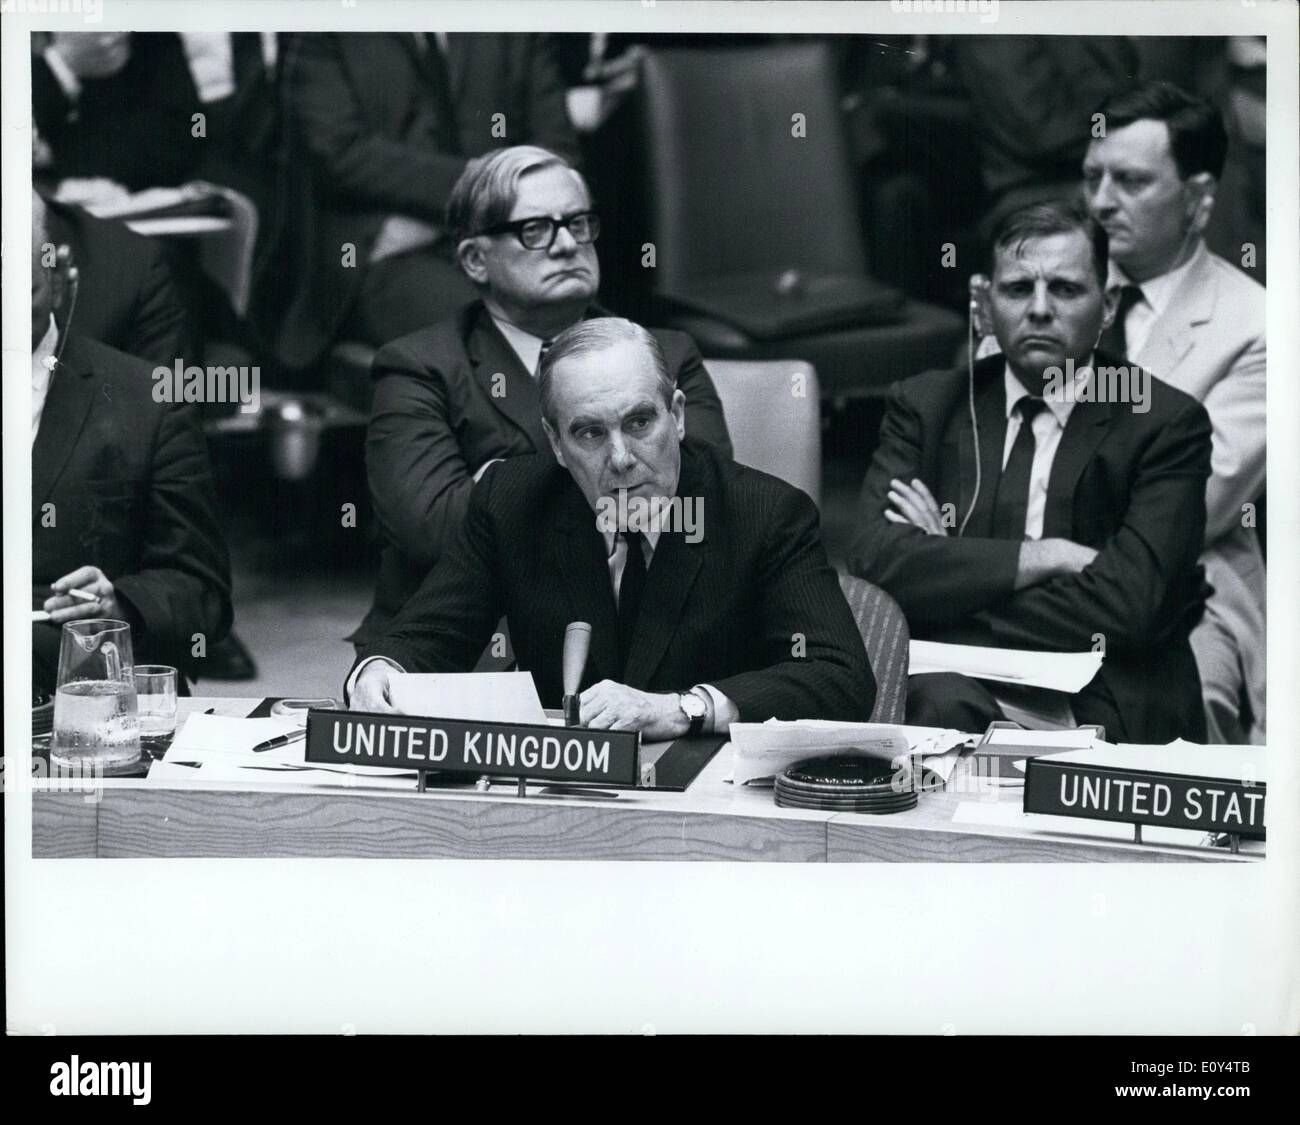 Aug. 08, 1968 - Security Council Begins Debate On Situation In Czechoslovakia: The Security Council tonight began debate, at the request of six Council members, concerning ''the present serious situation in th Czechoslovakia Socialist Republic''. The decision to take up this item - as requested today by Canada, Denmark, France, Paraguay, the United Kingdom and the United States - was taken by a vote of 13 in favour to 2 against (Hungary, Soviet Union) - Stock Image